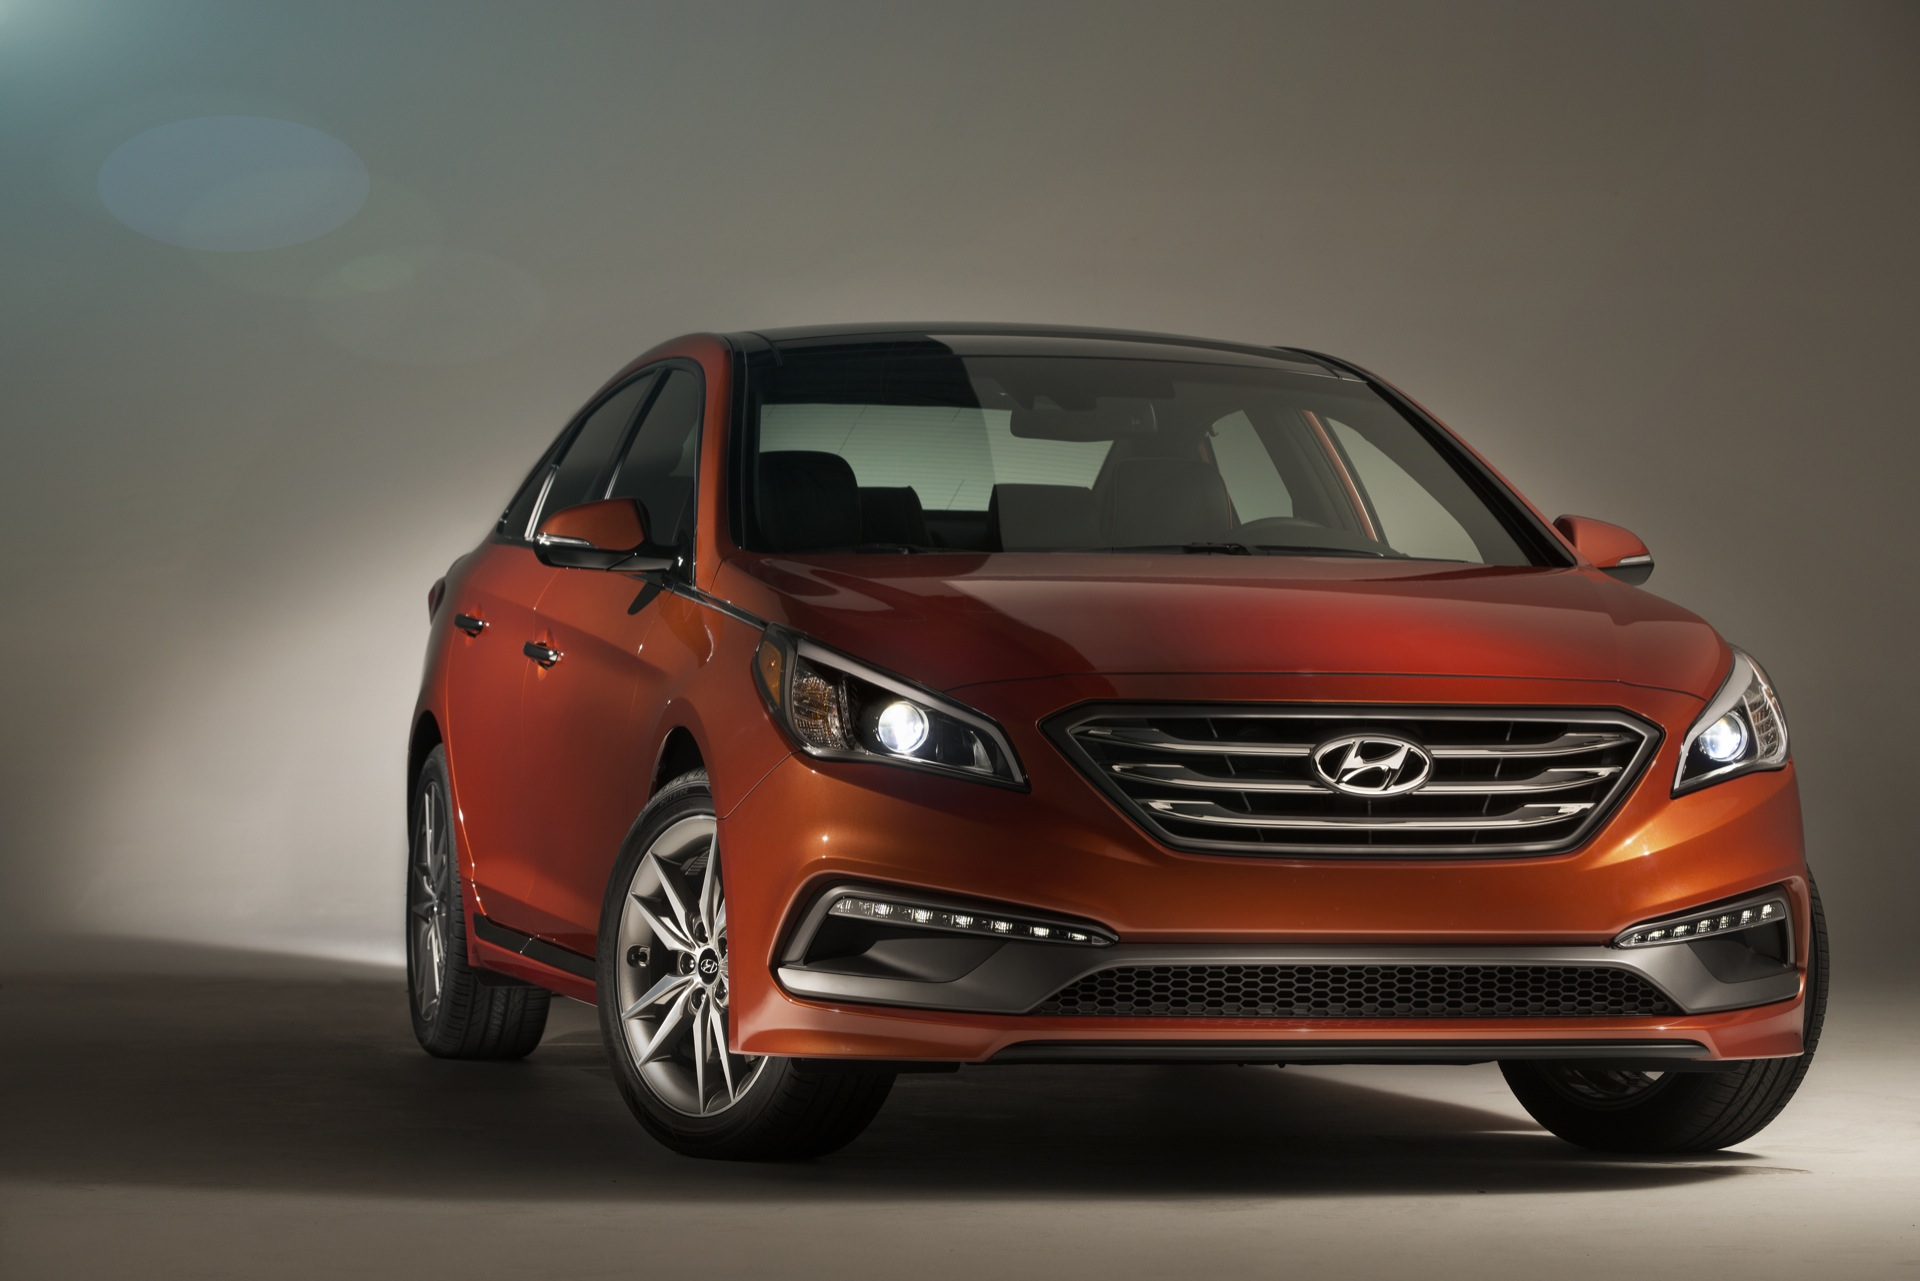 sonata msrp hyundai blue first kbb review news car book kelley prices equipment sticker latest exterior and all the